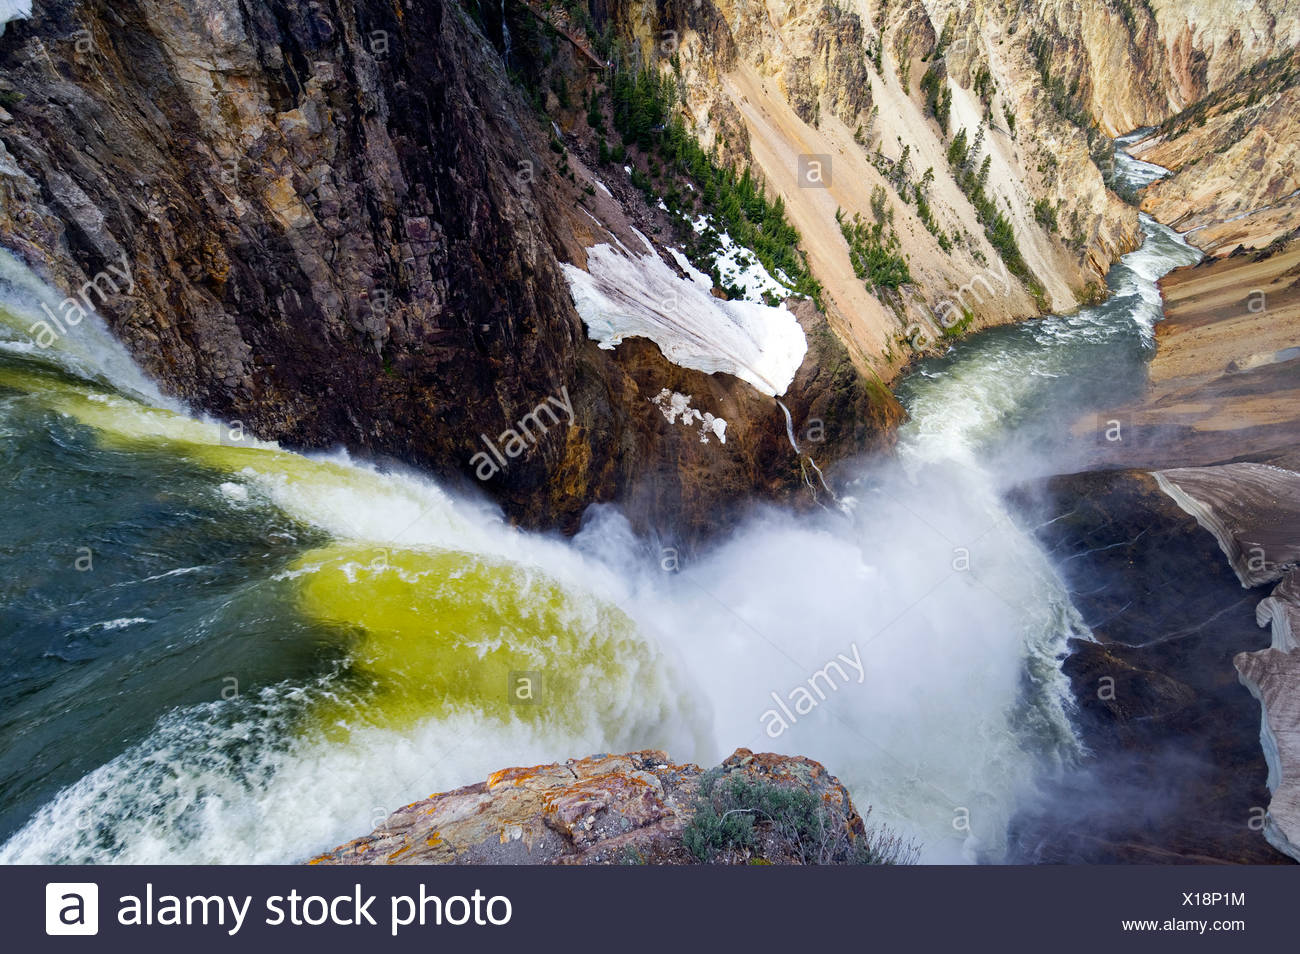 Lower Yellowstone Falls cascades into the valley below in Yellowstone National Park, Wyoming. - Stock Image